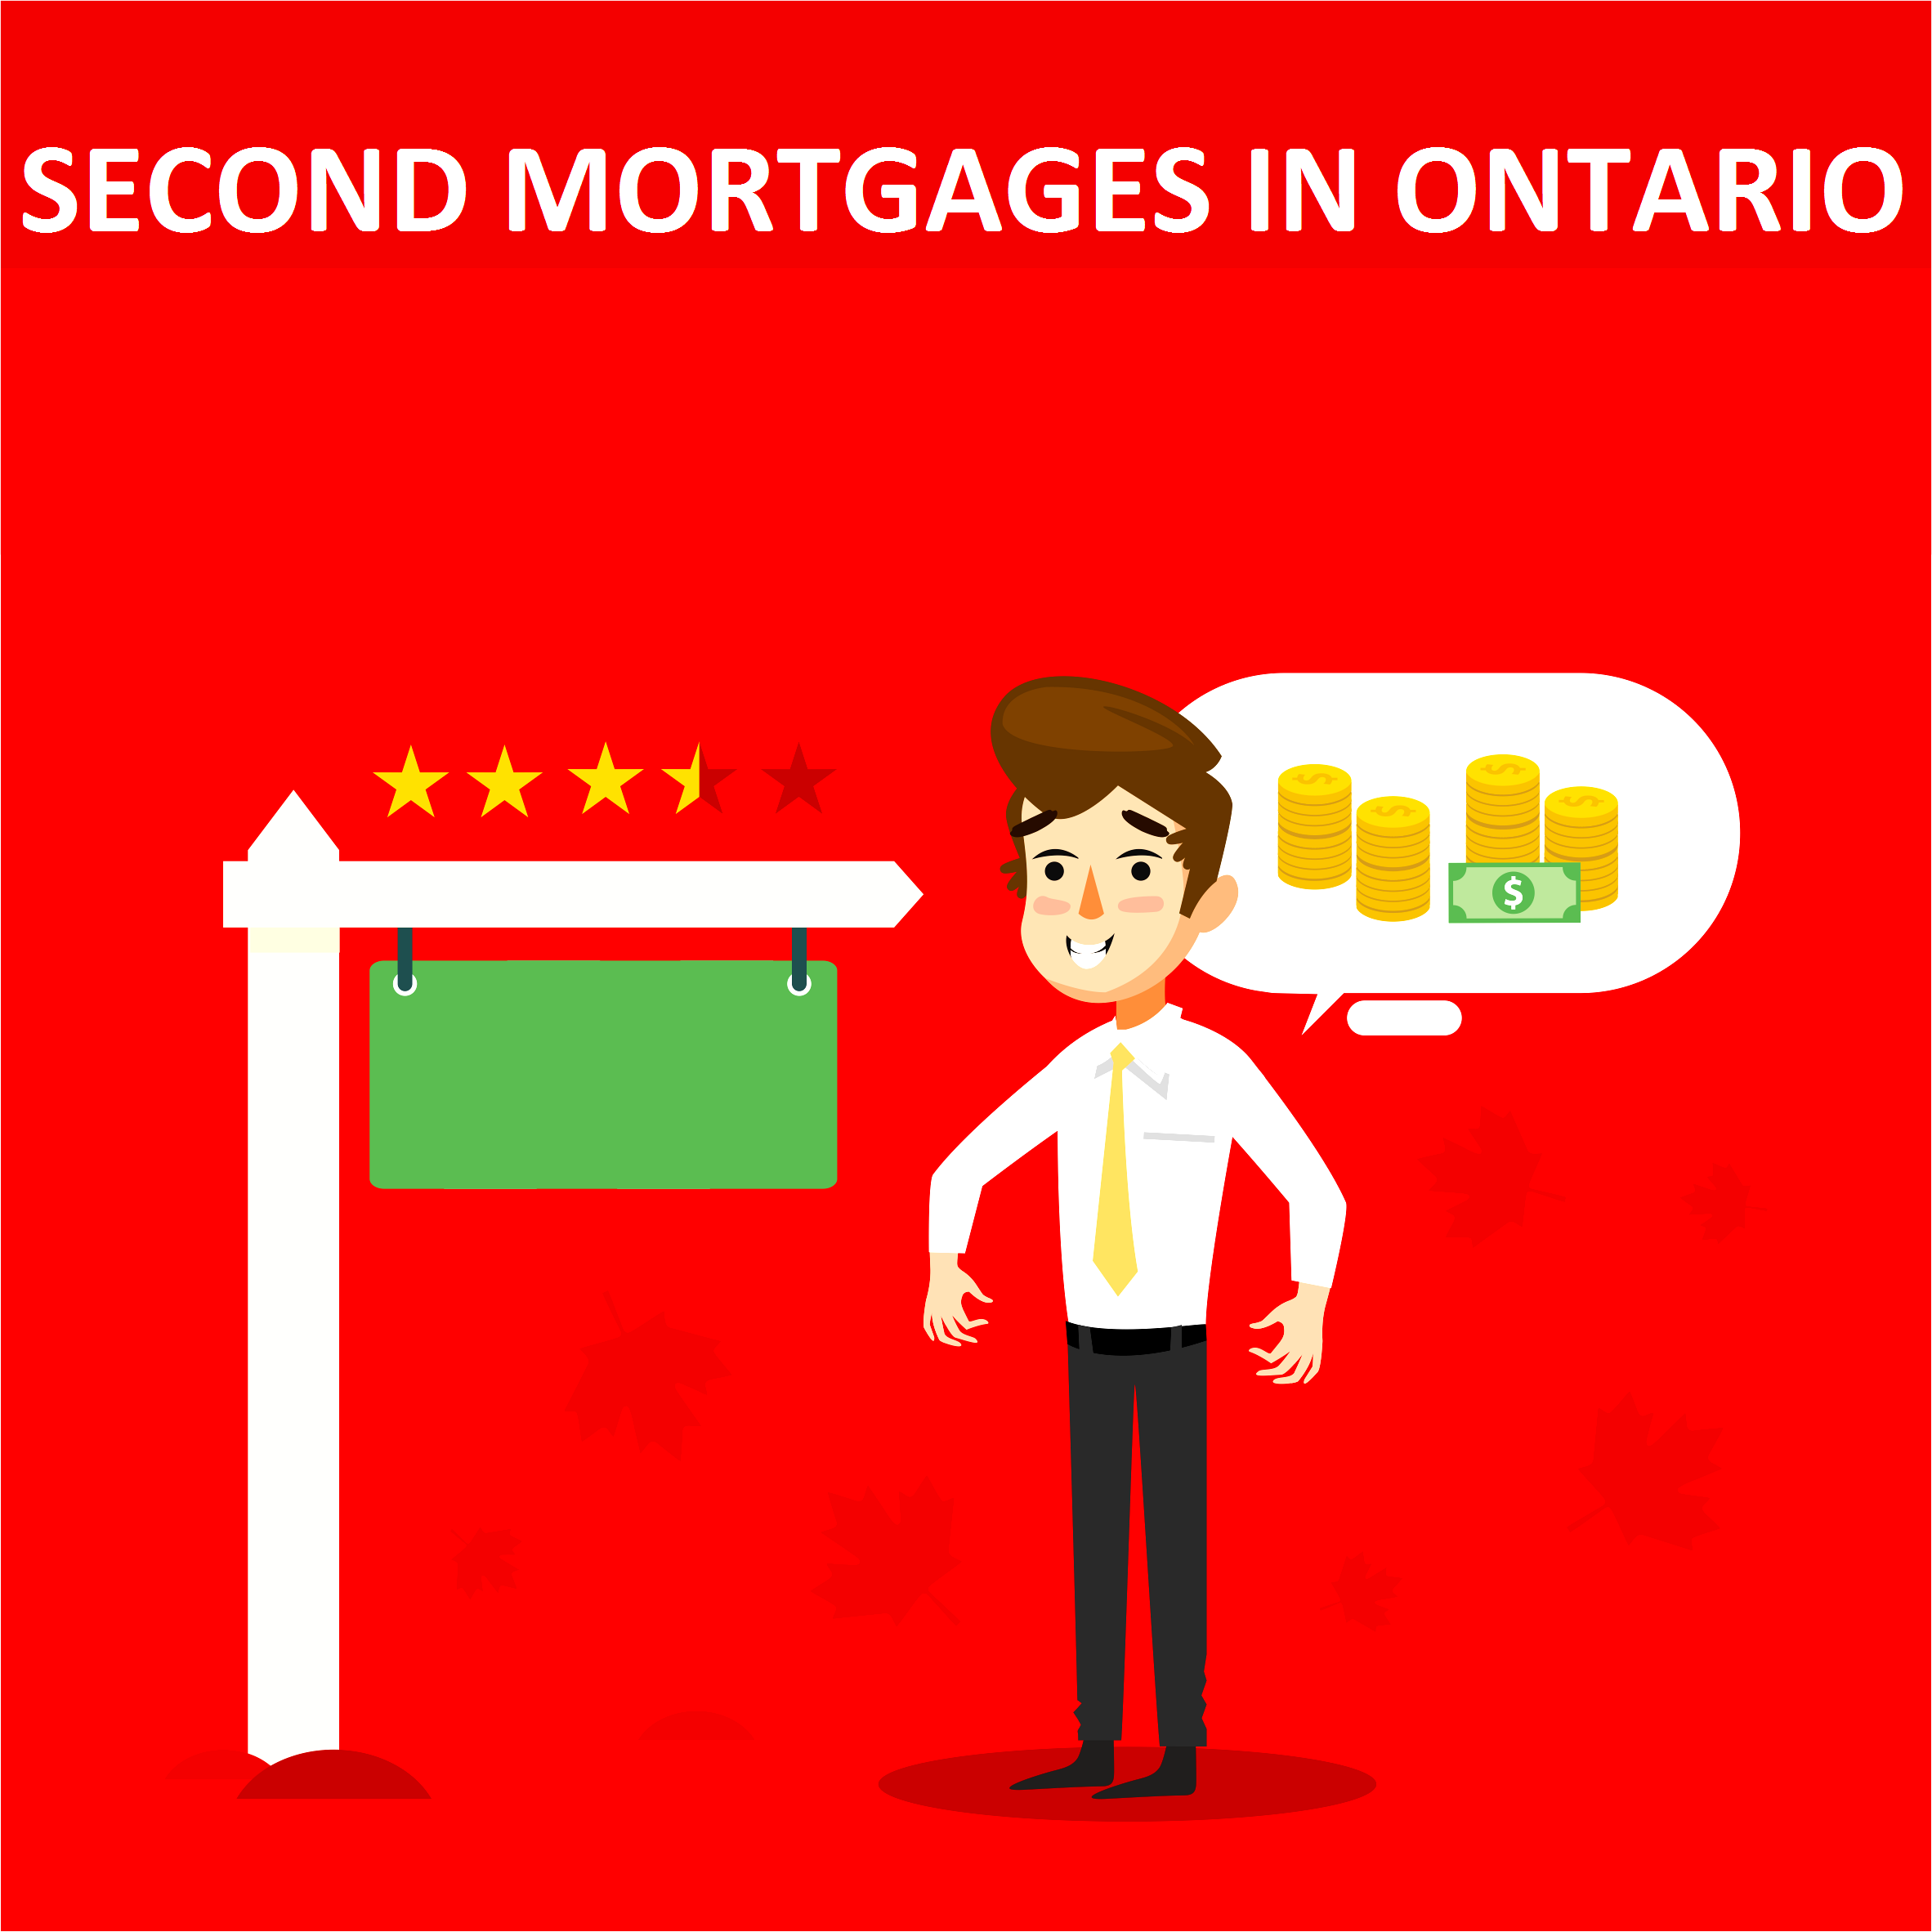 Second Mortgages in Ontario